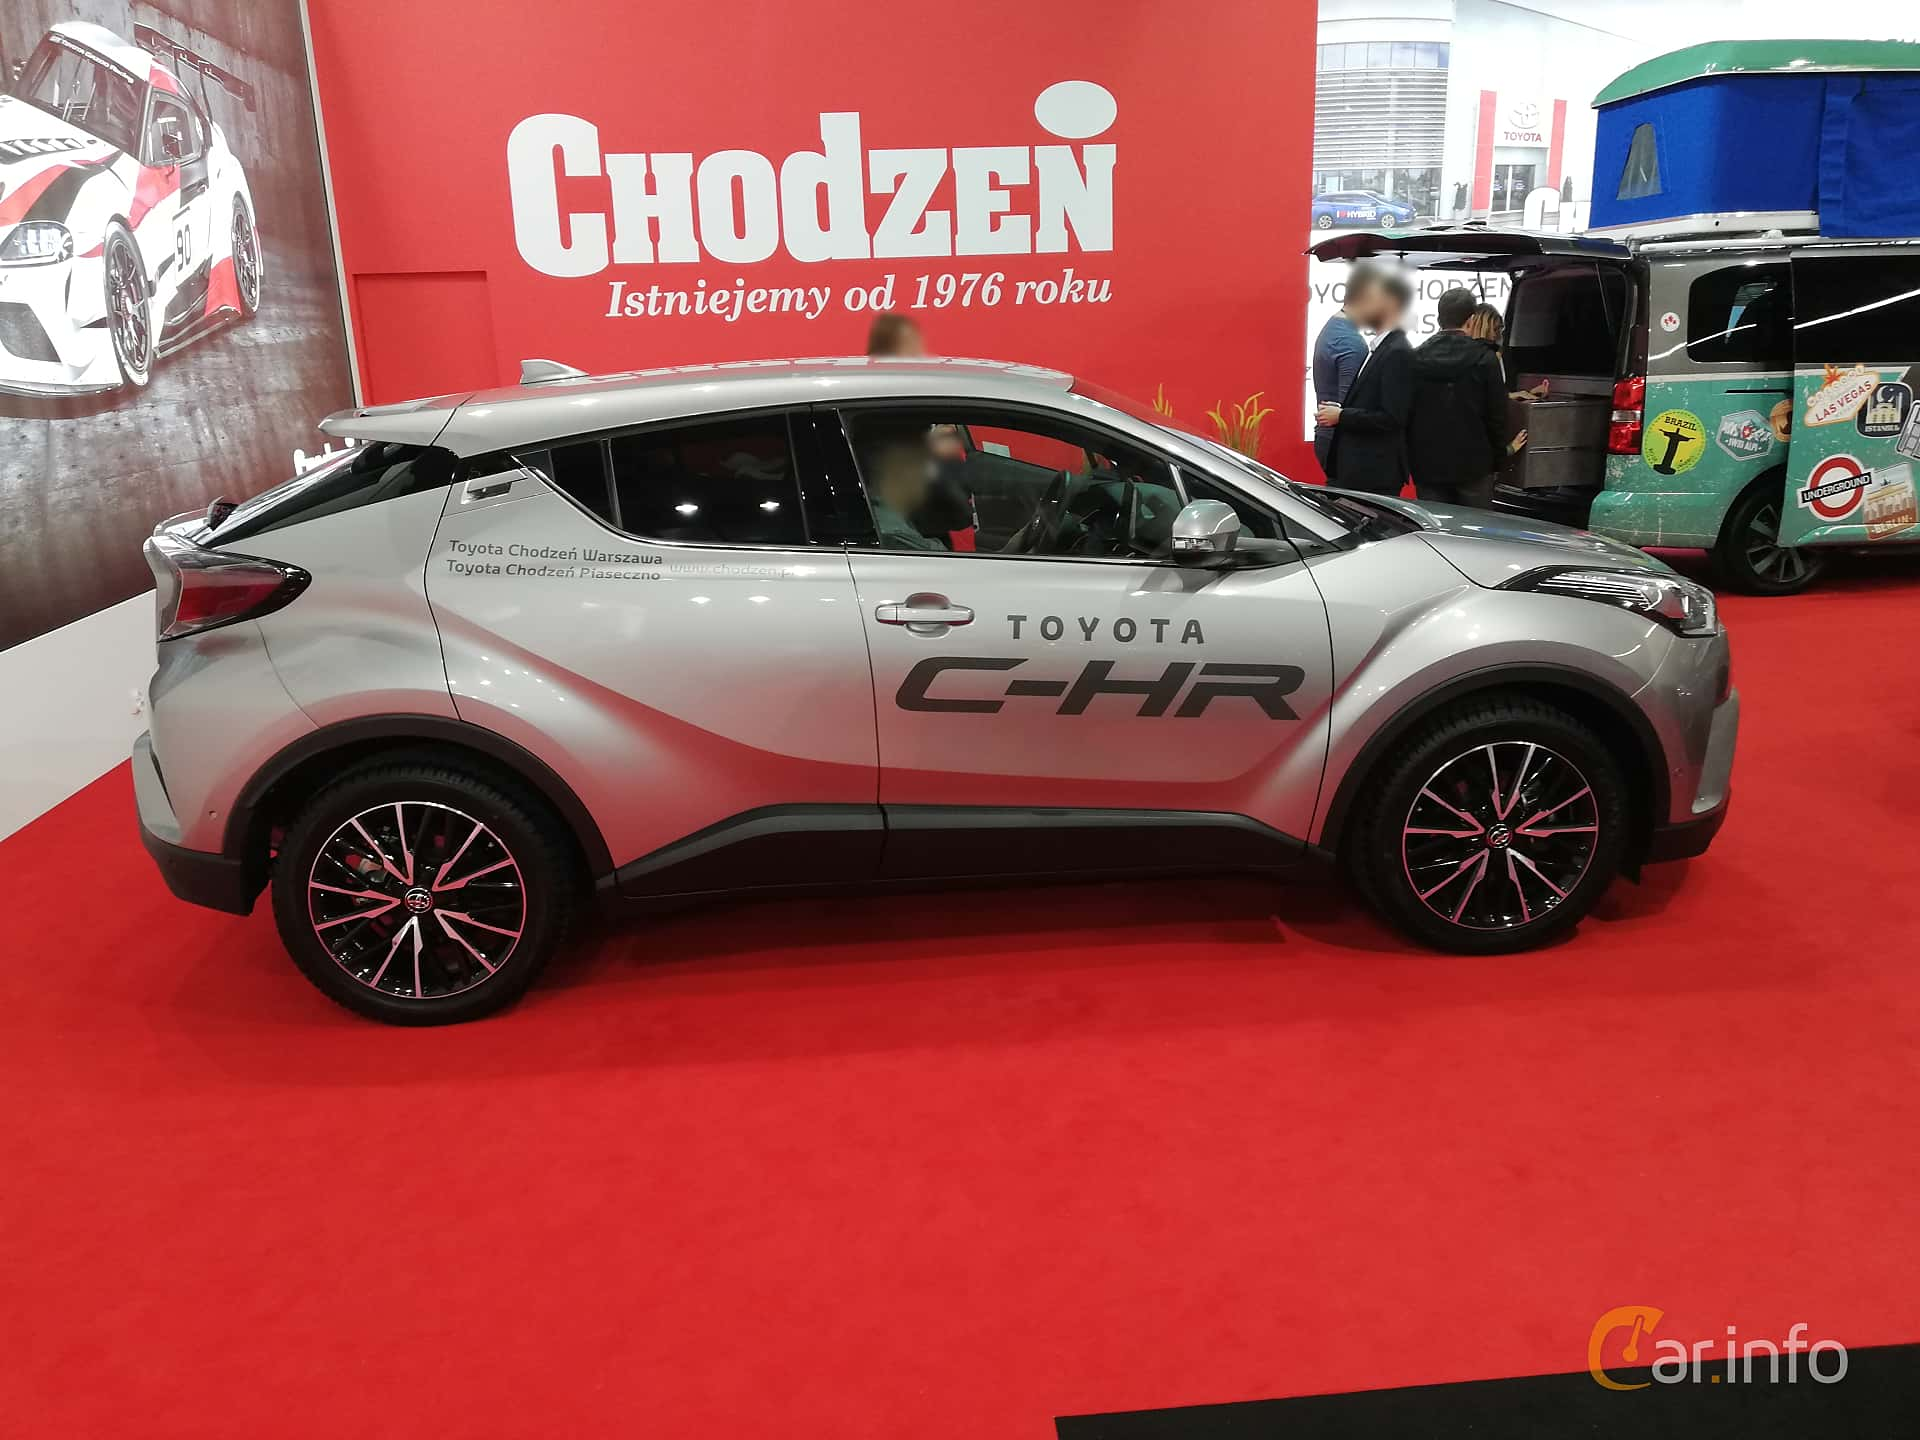 Toyota C-HR 1.2 Manual, 116hp, 2018 at Warsawa Motorshow 2018